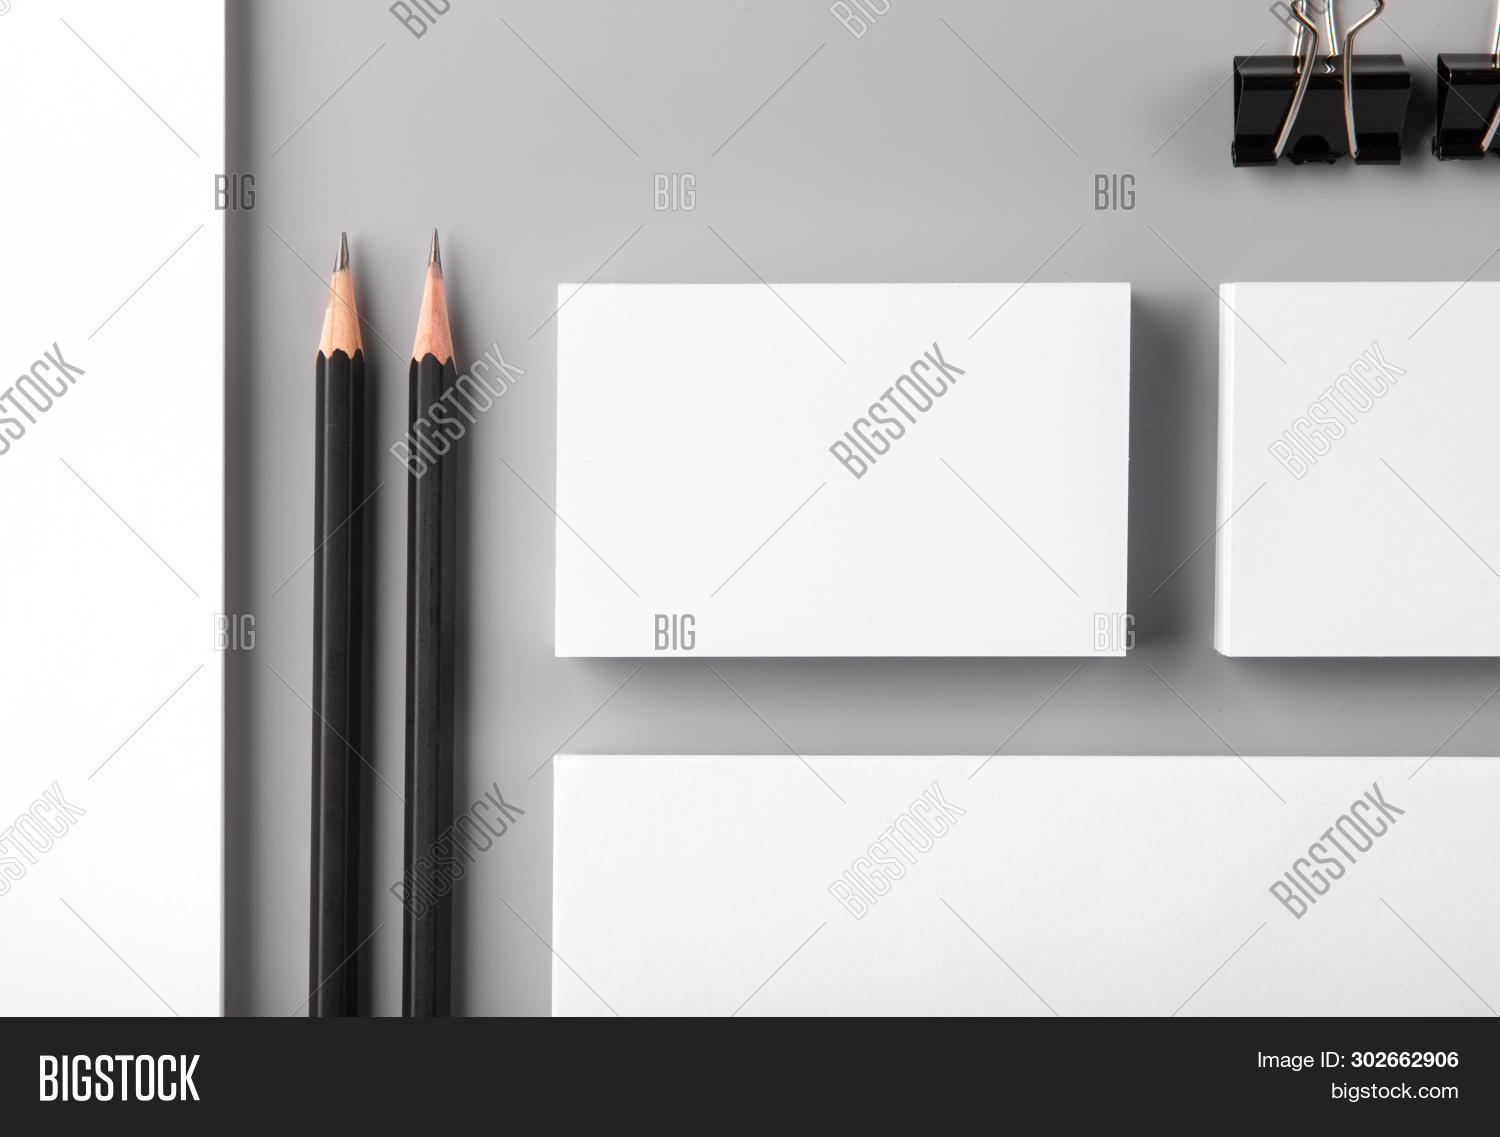 Blank,Communication,Corporate,Document,Group,Paper,Style,background,black,brand,branding,business,card,copy,design,desktop,empty,fake,gray,guideline,id,identity,isolated,letterhead,mask,mock,mock-up,mockup,nobody,object,of,order,pencil,pile,portfolio,print,set,sheet,space,stack,stationary,stationery,template,texture,up,visual,white